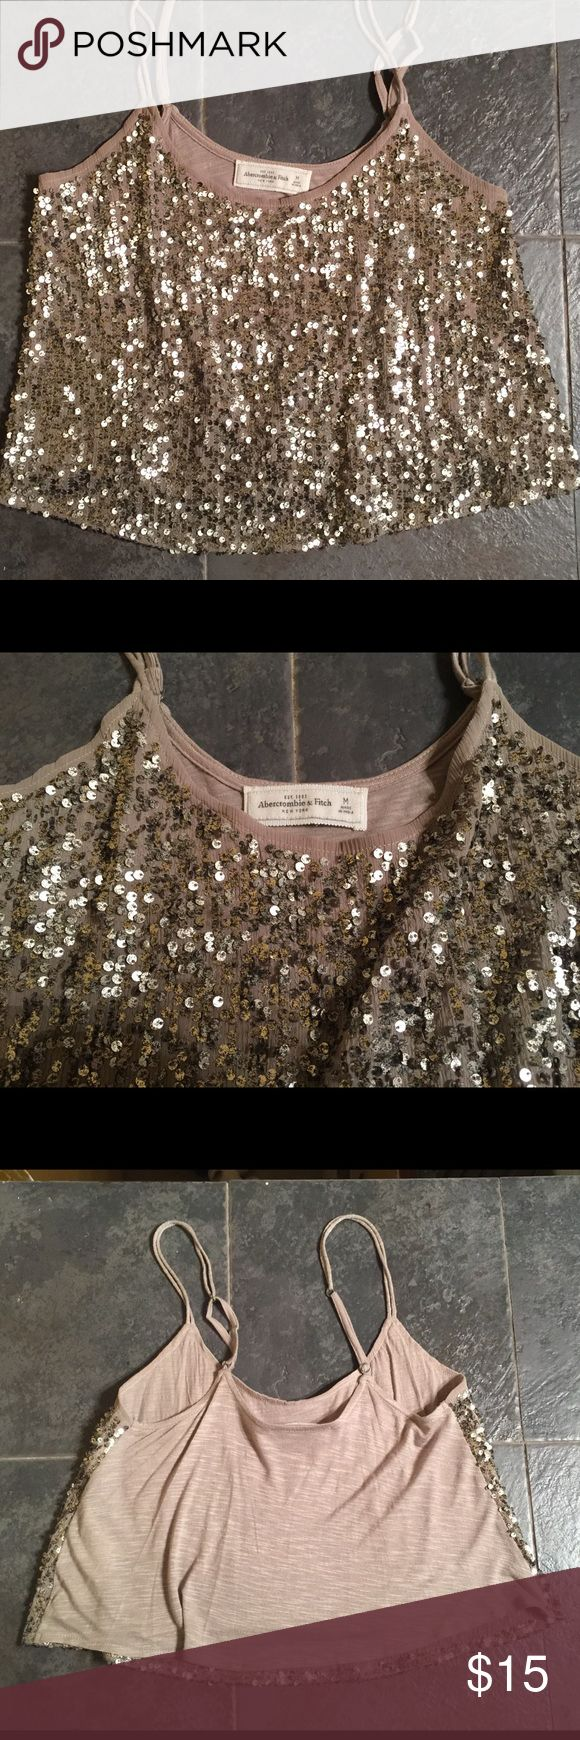 Abercrombie & Fitch cropped sequin tank M Very sexy cropped A&F sequined tank. Size M and tan in color. In great used condition. Abercrombie & Fitch Tops Tank Tops